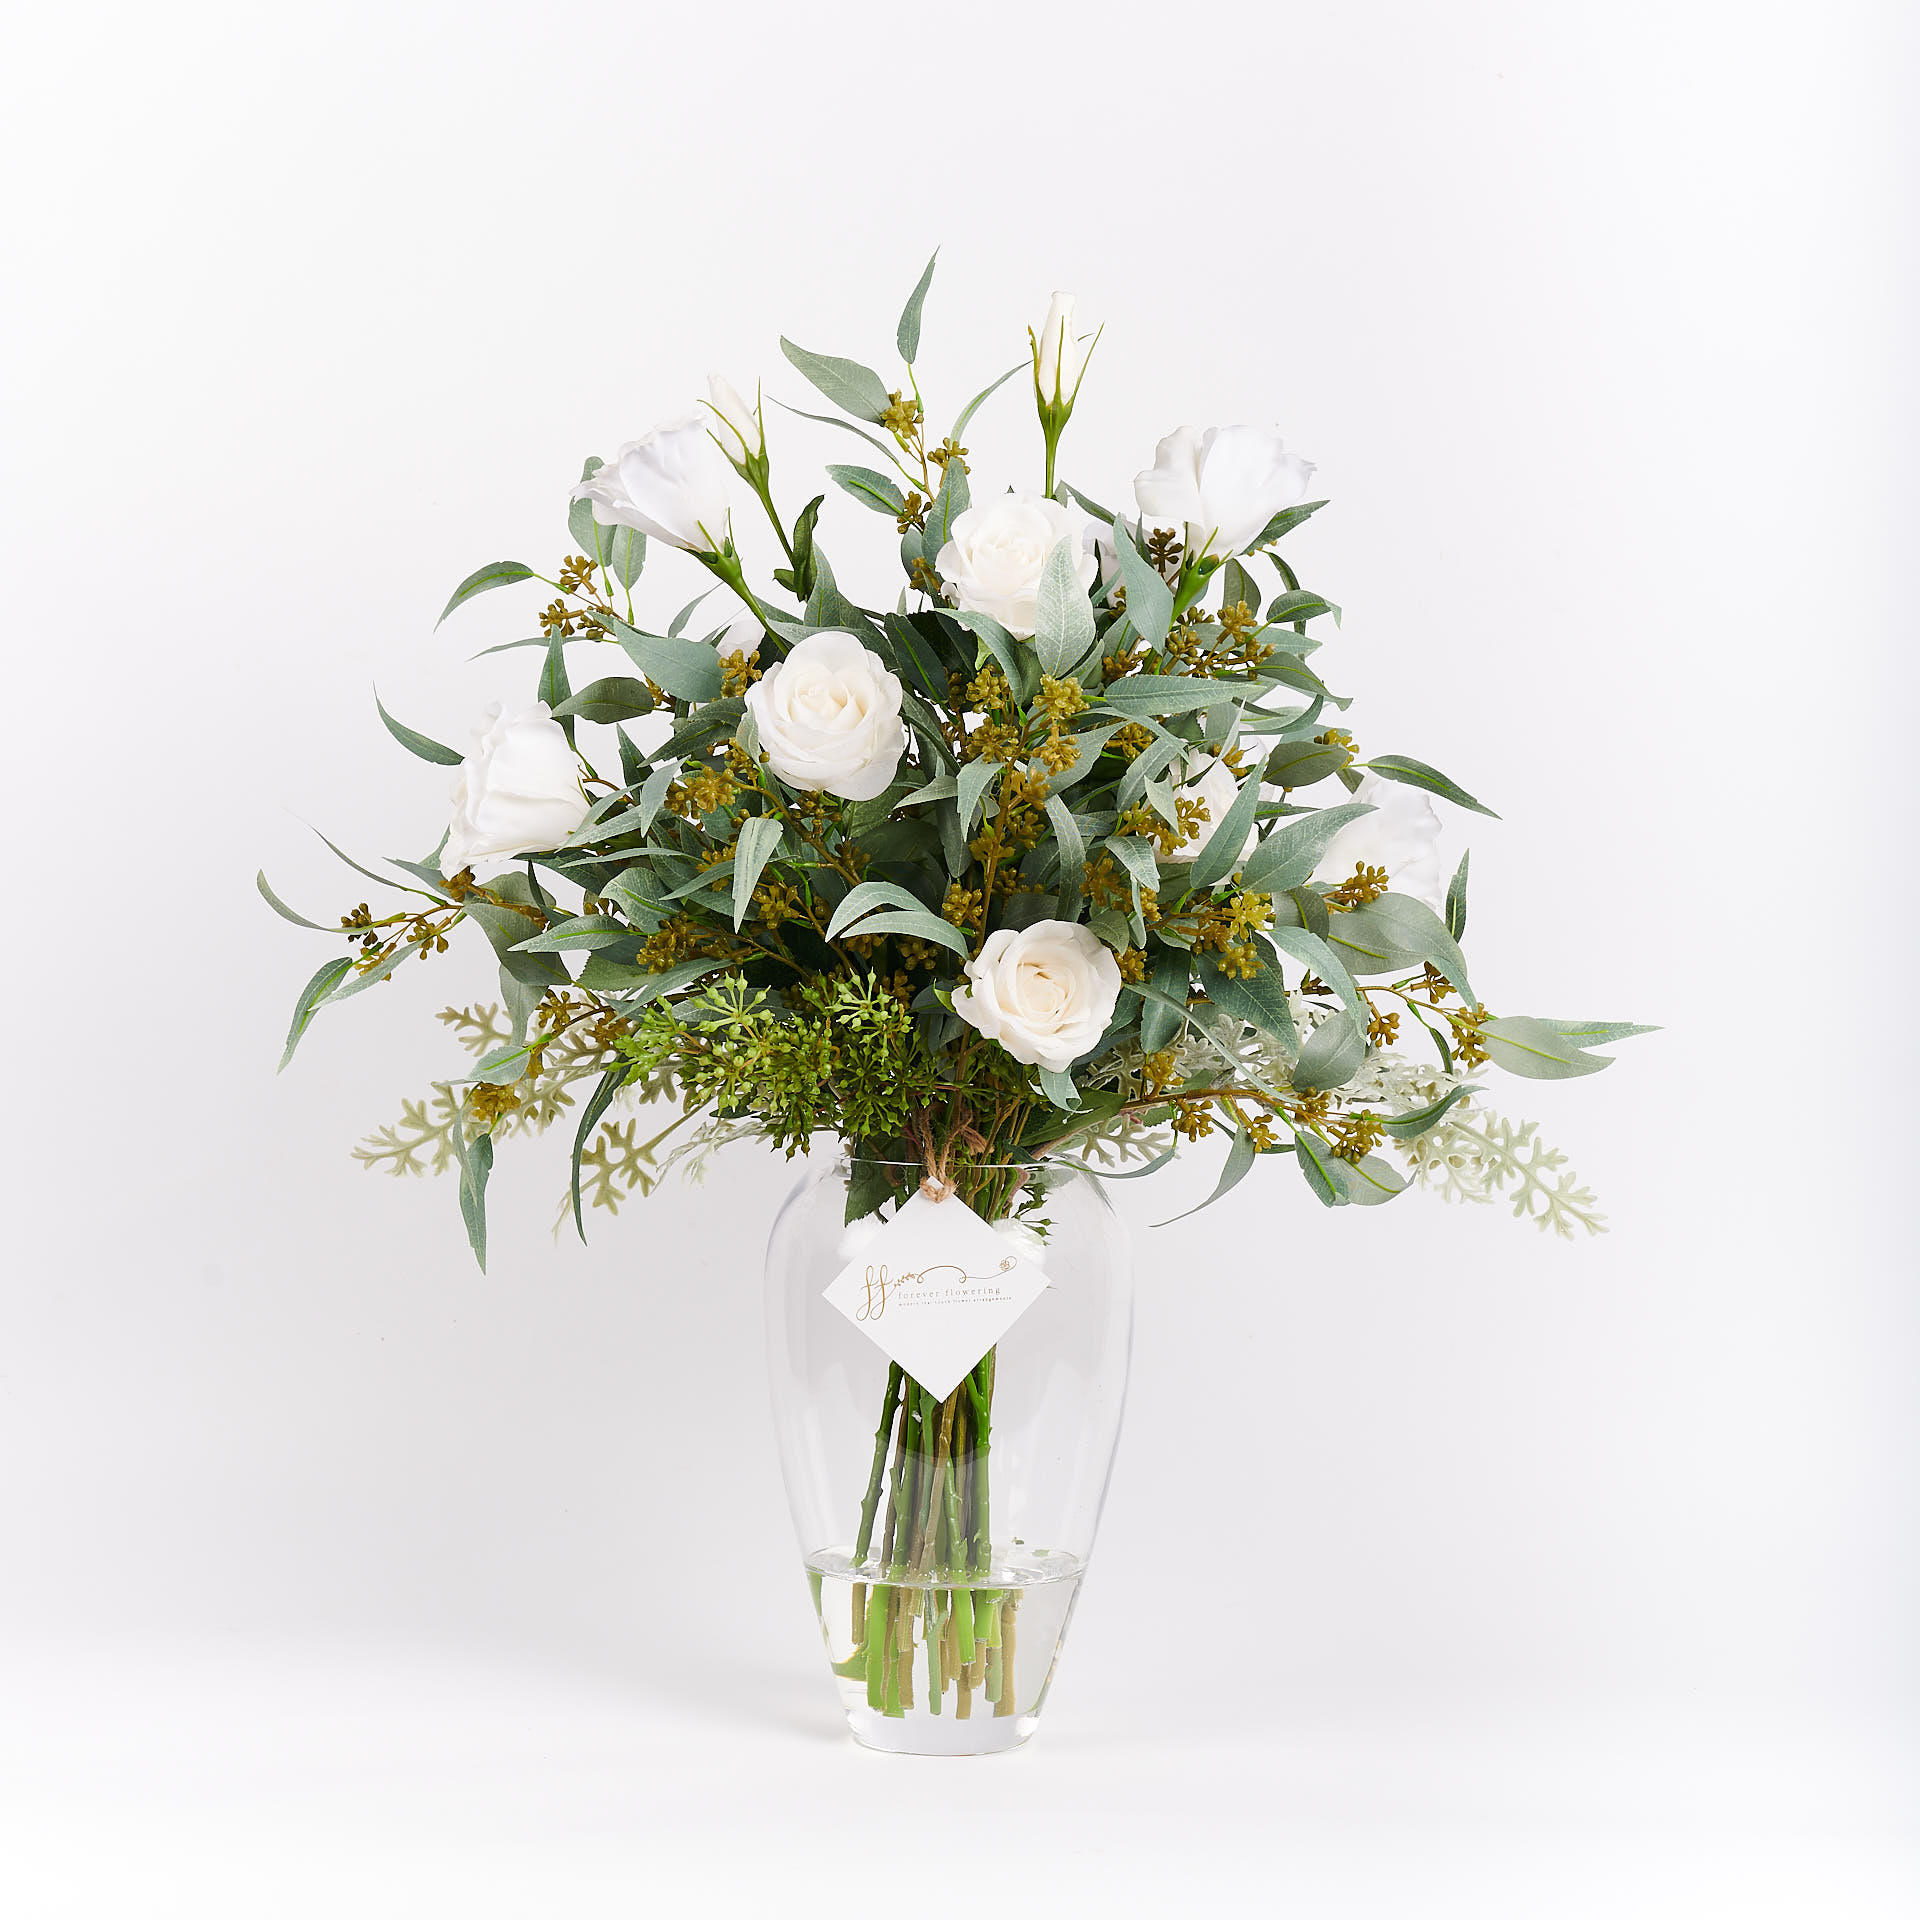 Pandawa 1 Forever Flowering Real Touch Flower Arrangements _.jpg